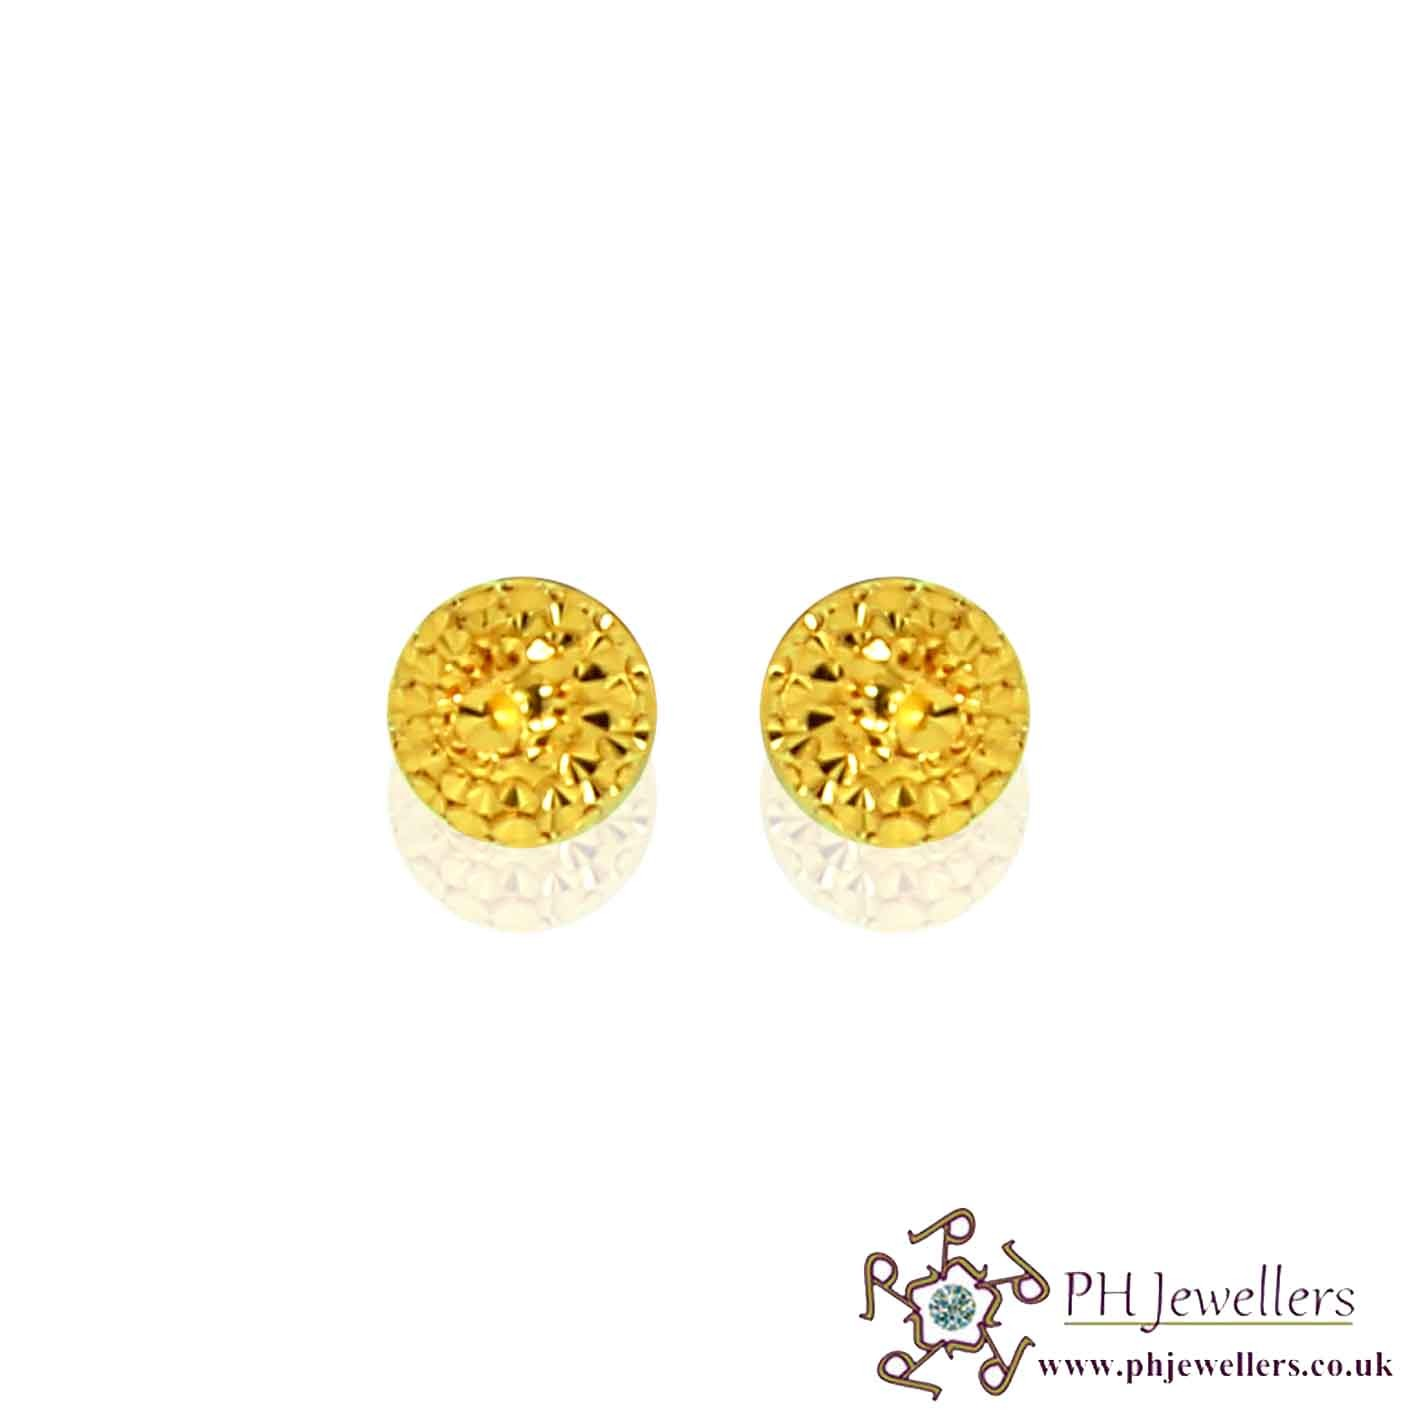 22ct 916 Yellow Gold Stud Earring SE5